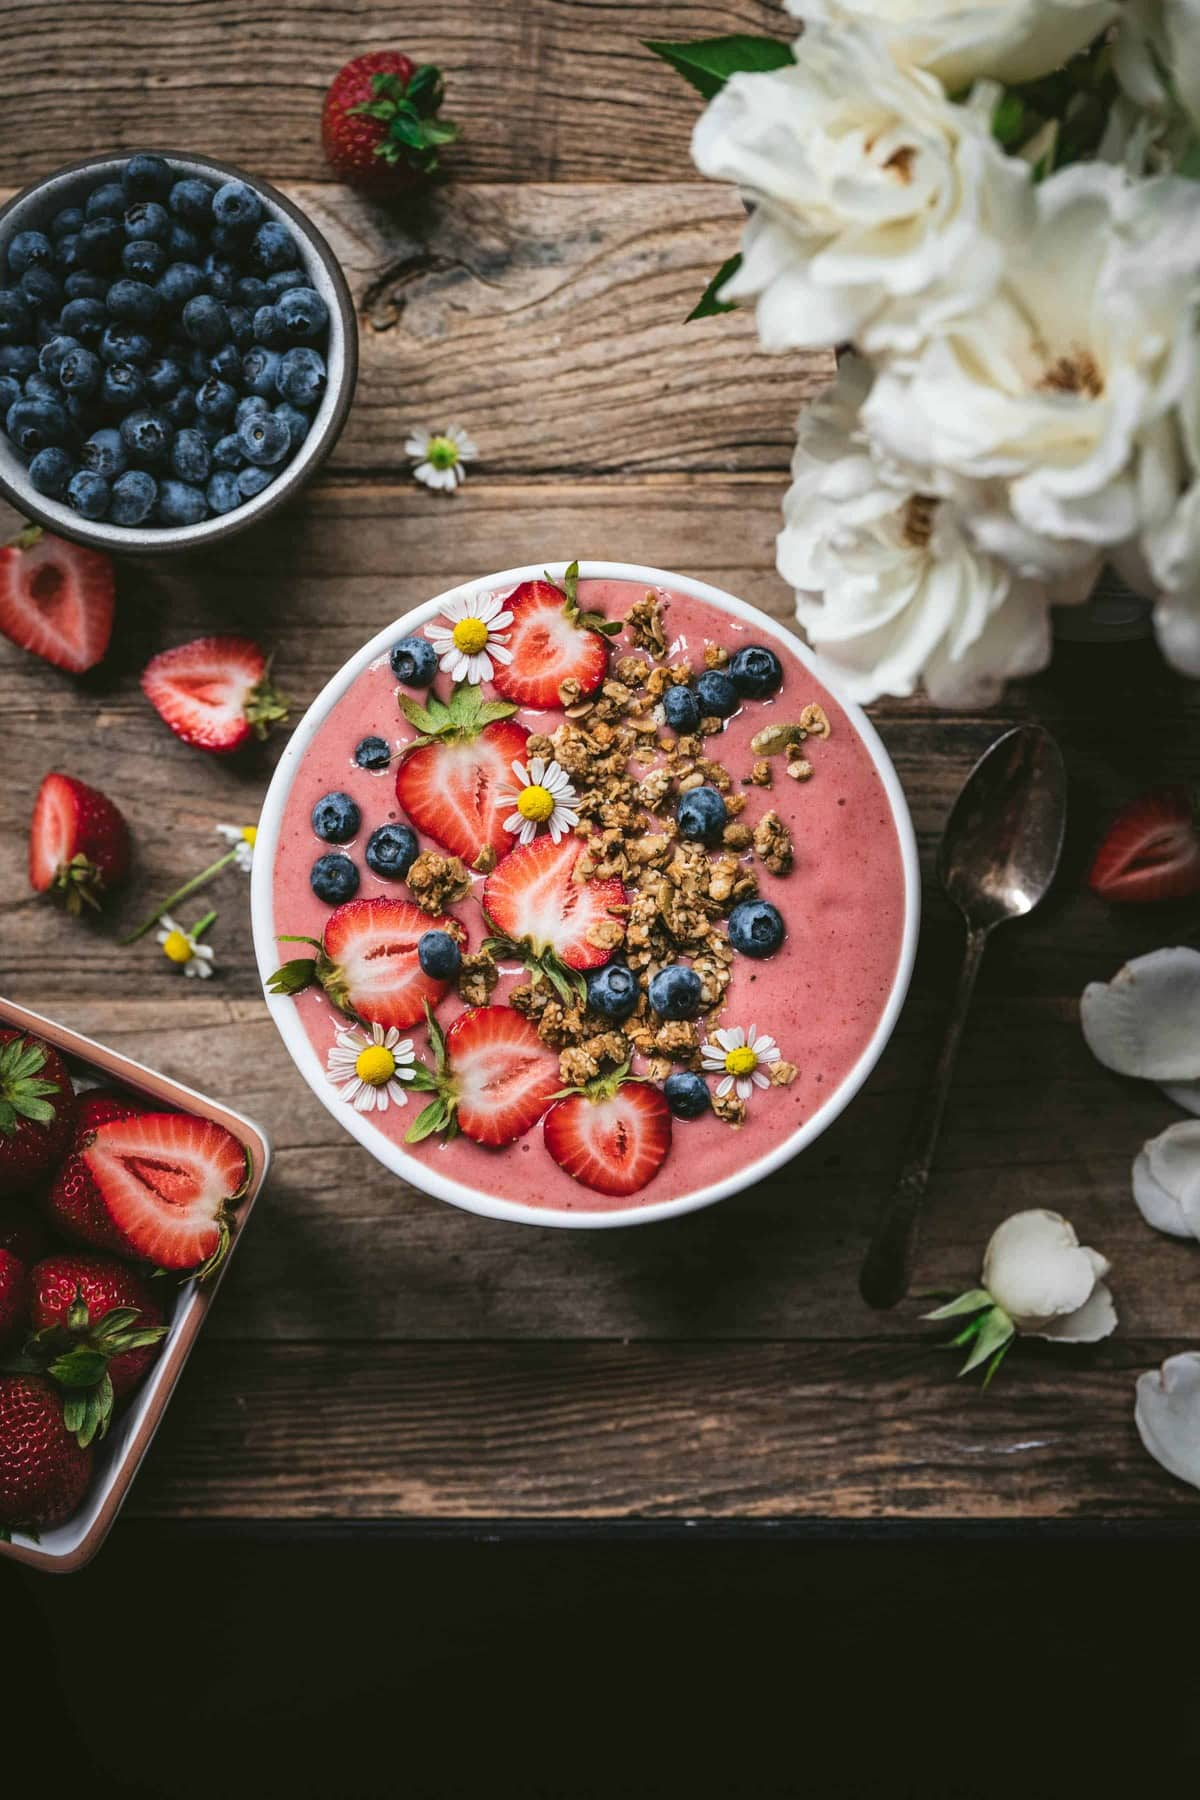 Overhead view of strawberries and cream smoothie bowl with fresh berries and granola on wood table